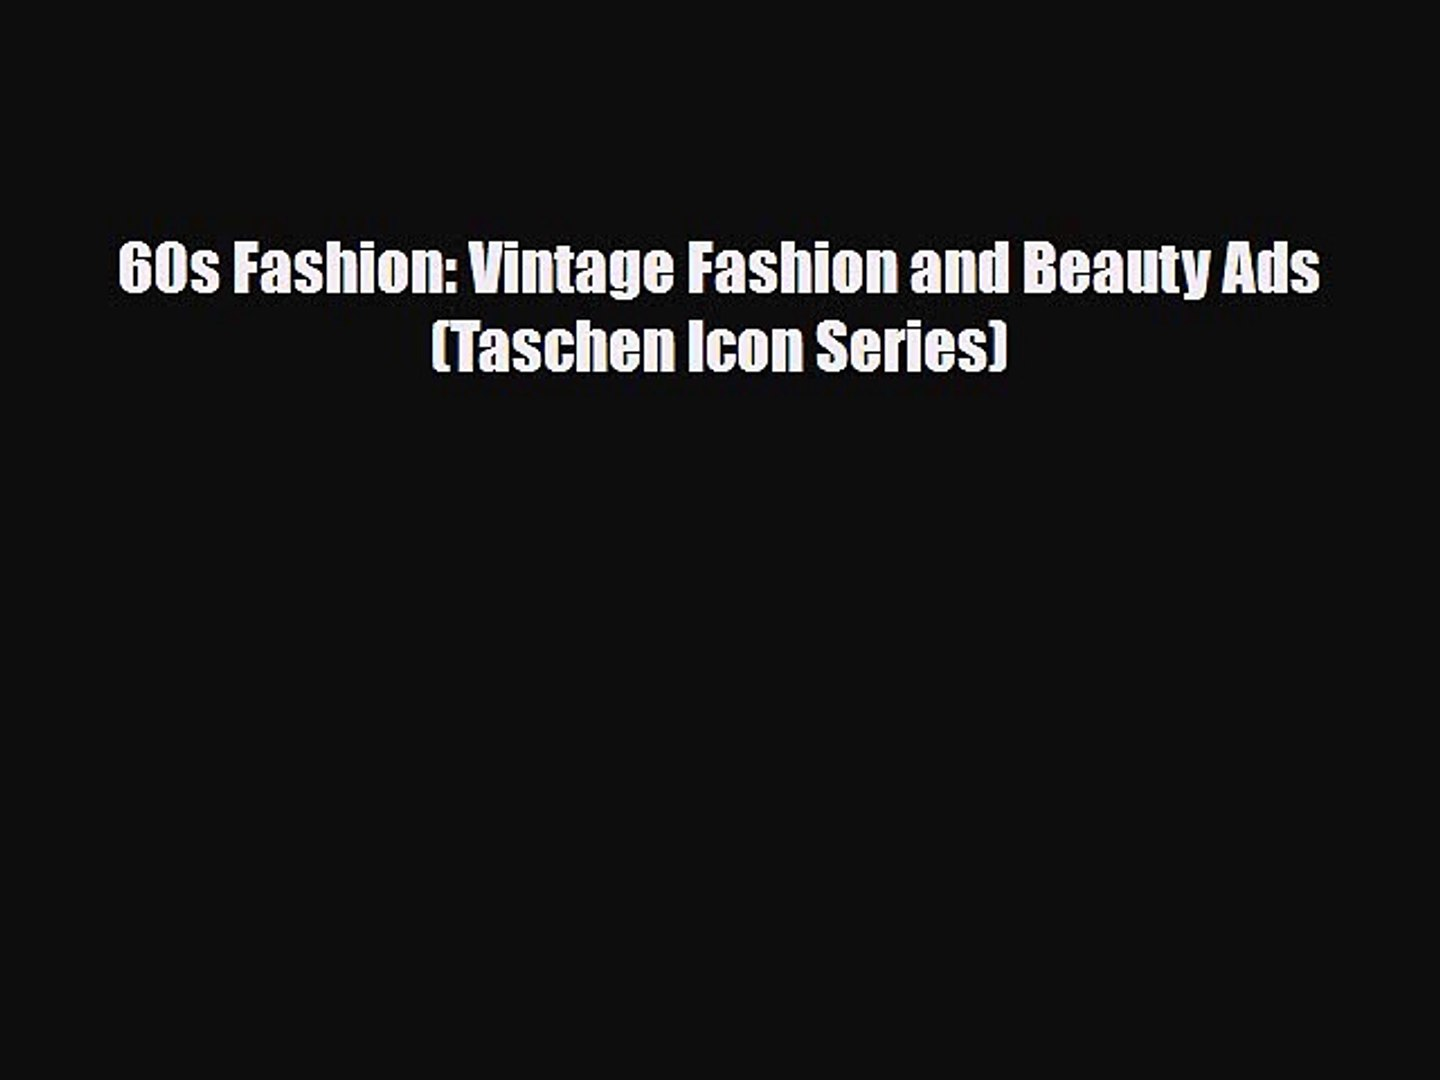 [Download] 60s Fashion: Vintage Fashion and Beauty Ads (Taschen Icon Series) [Download] Full